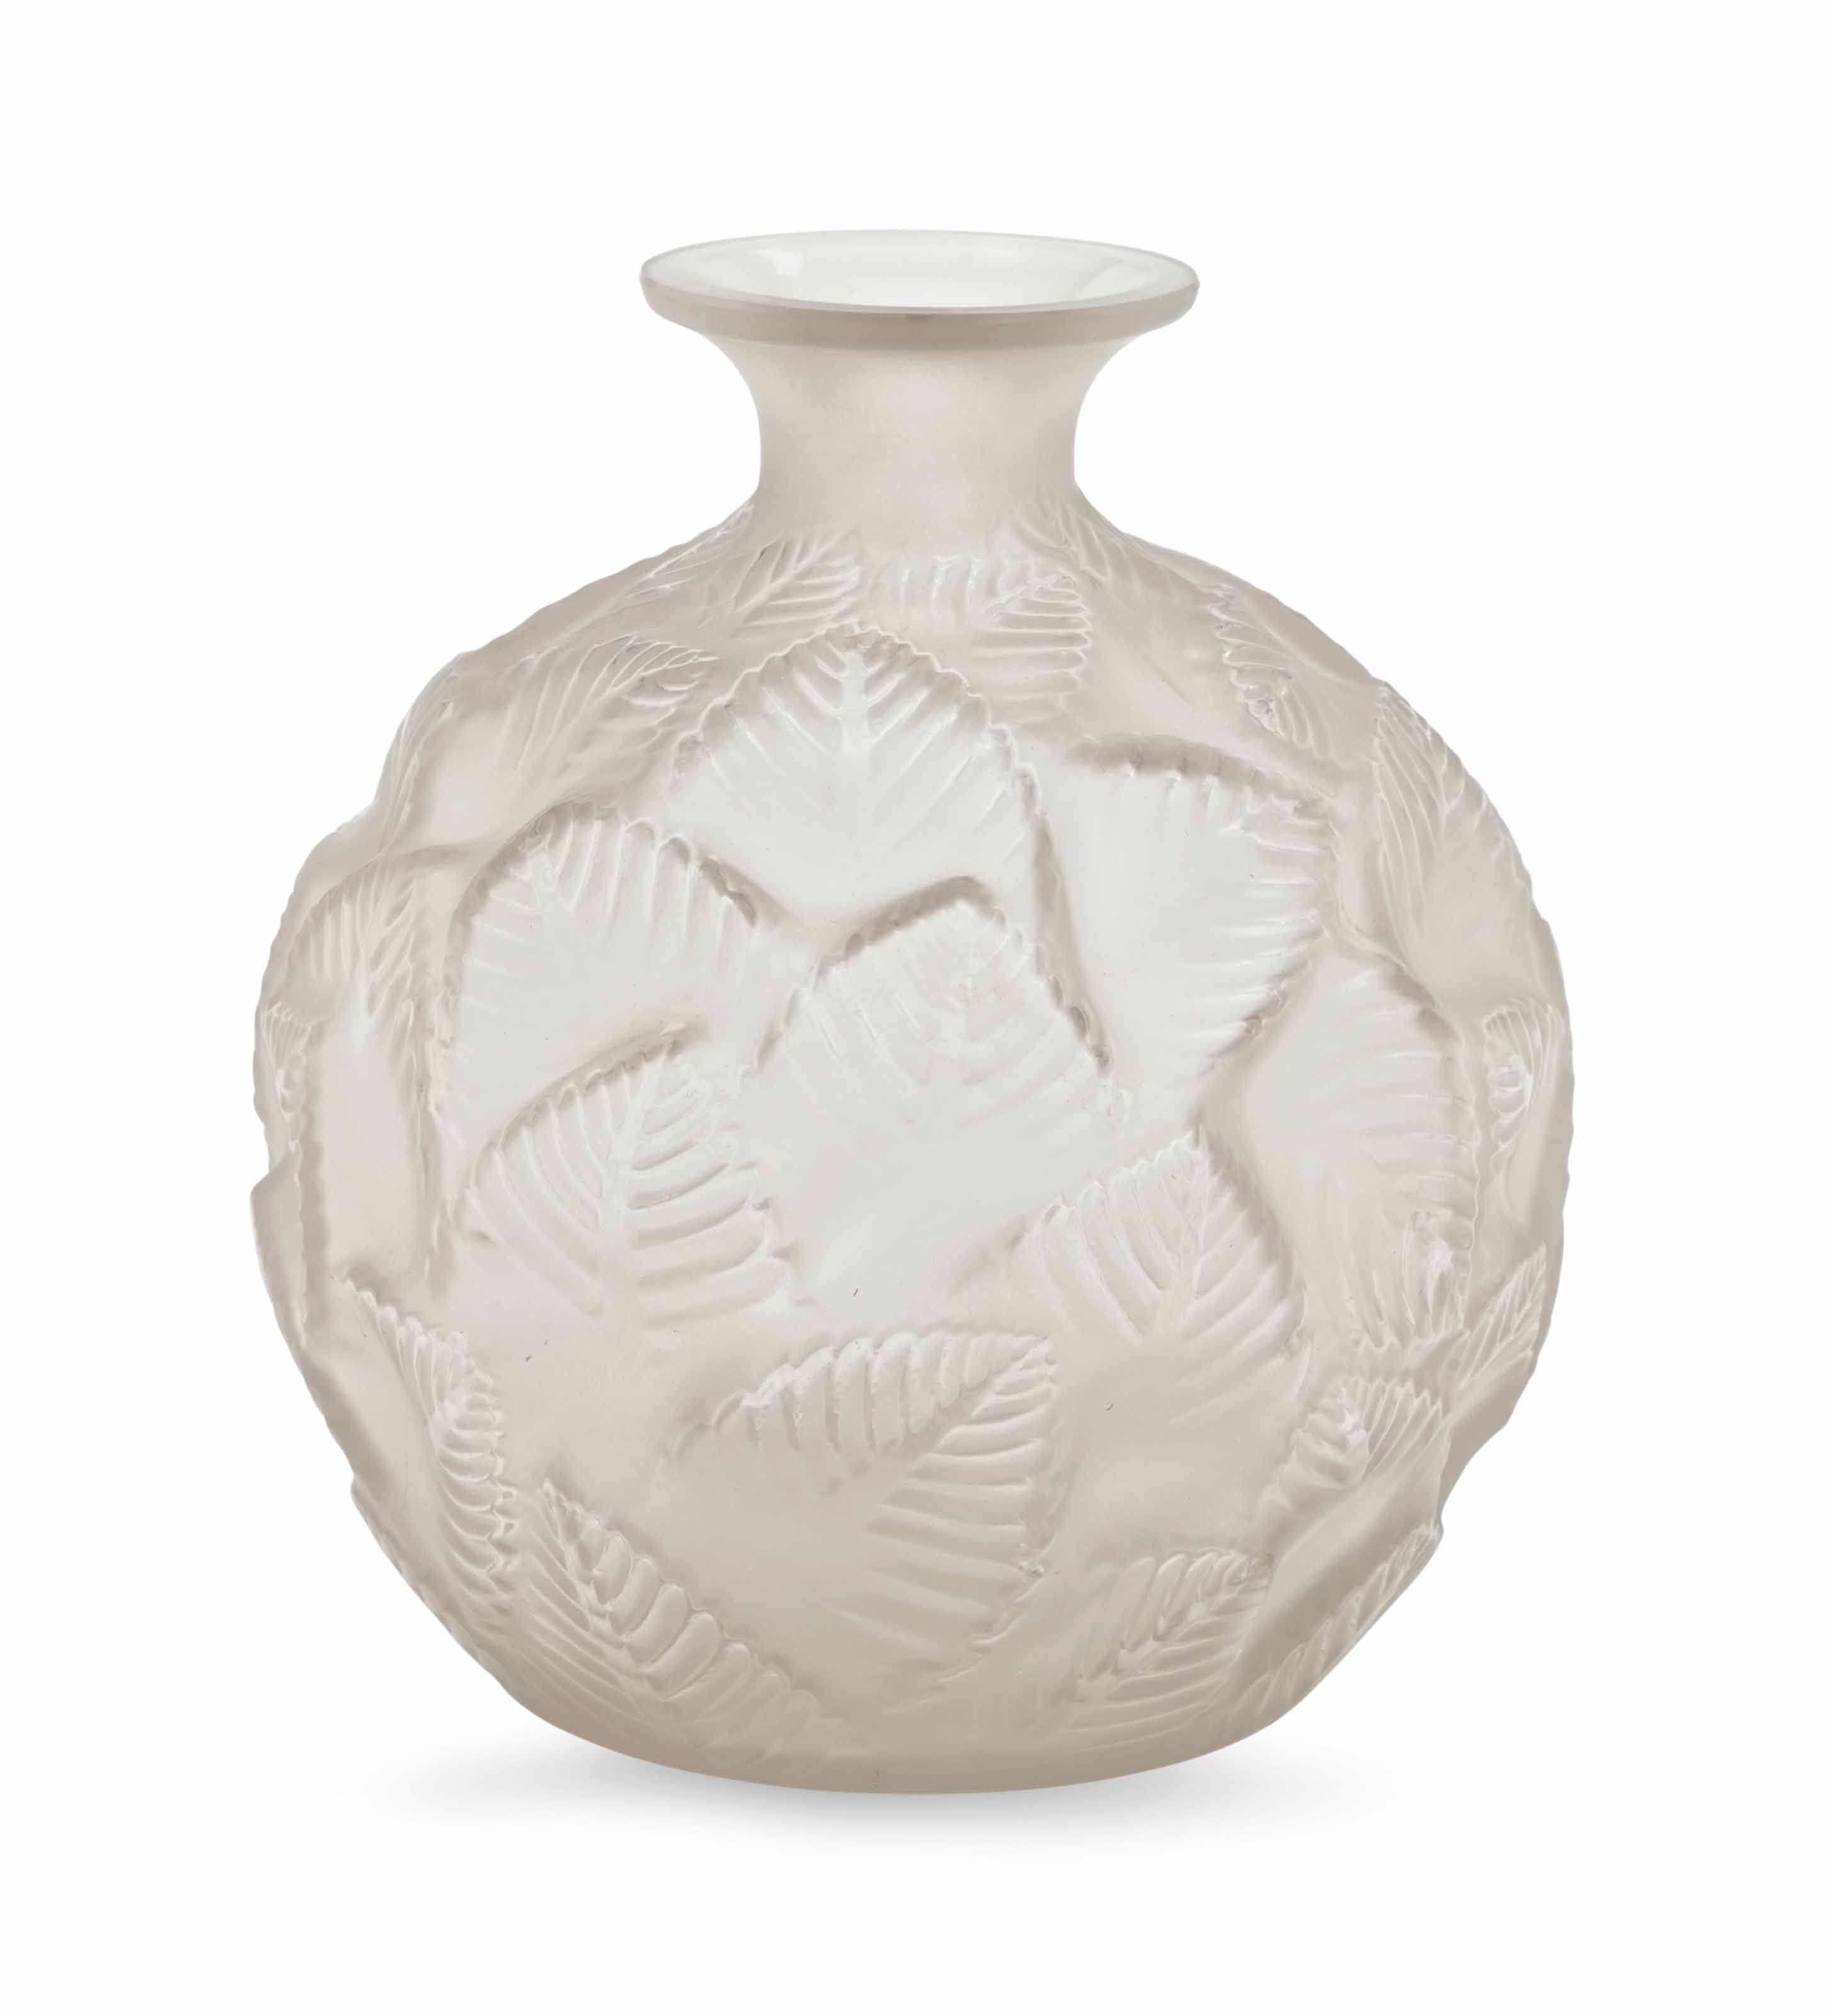 A FRENCH FROSTED VASE VASE, OR